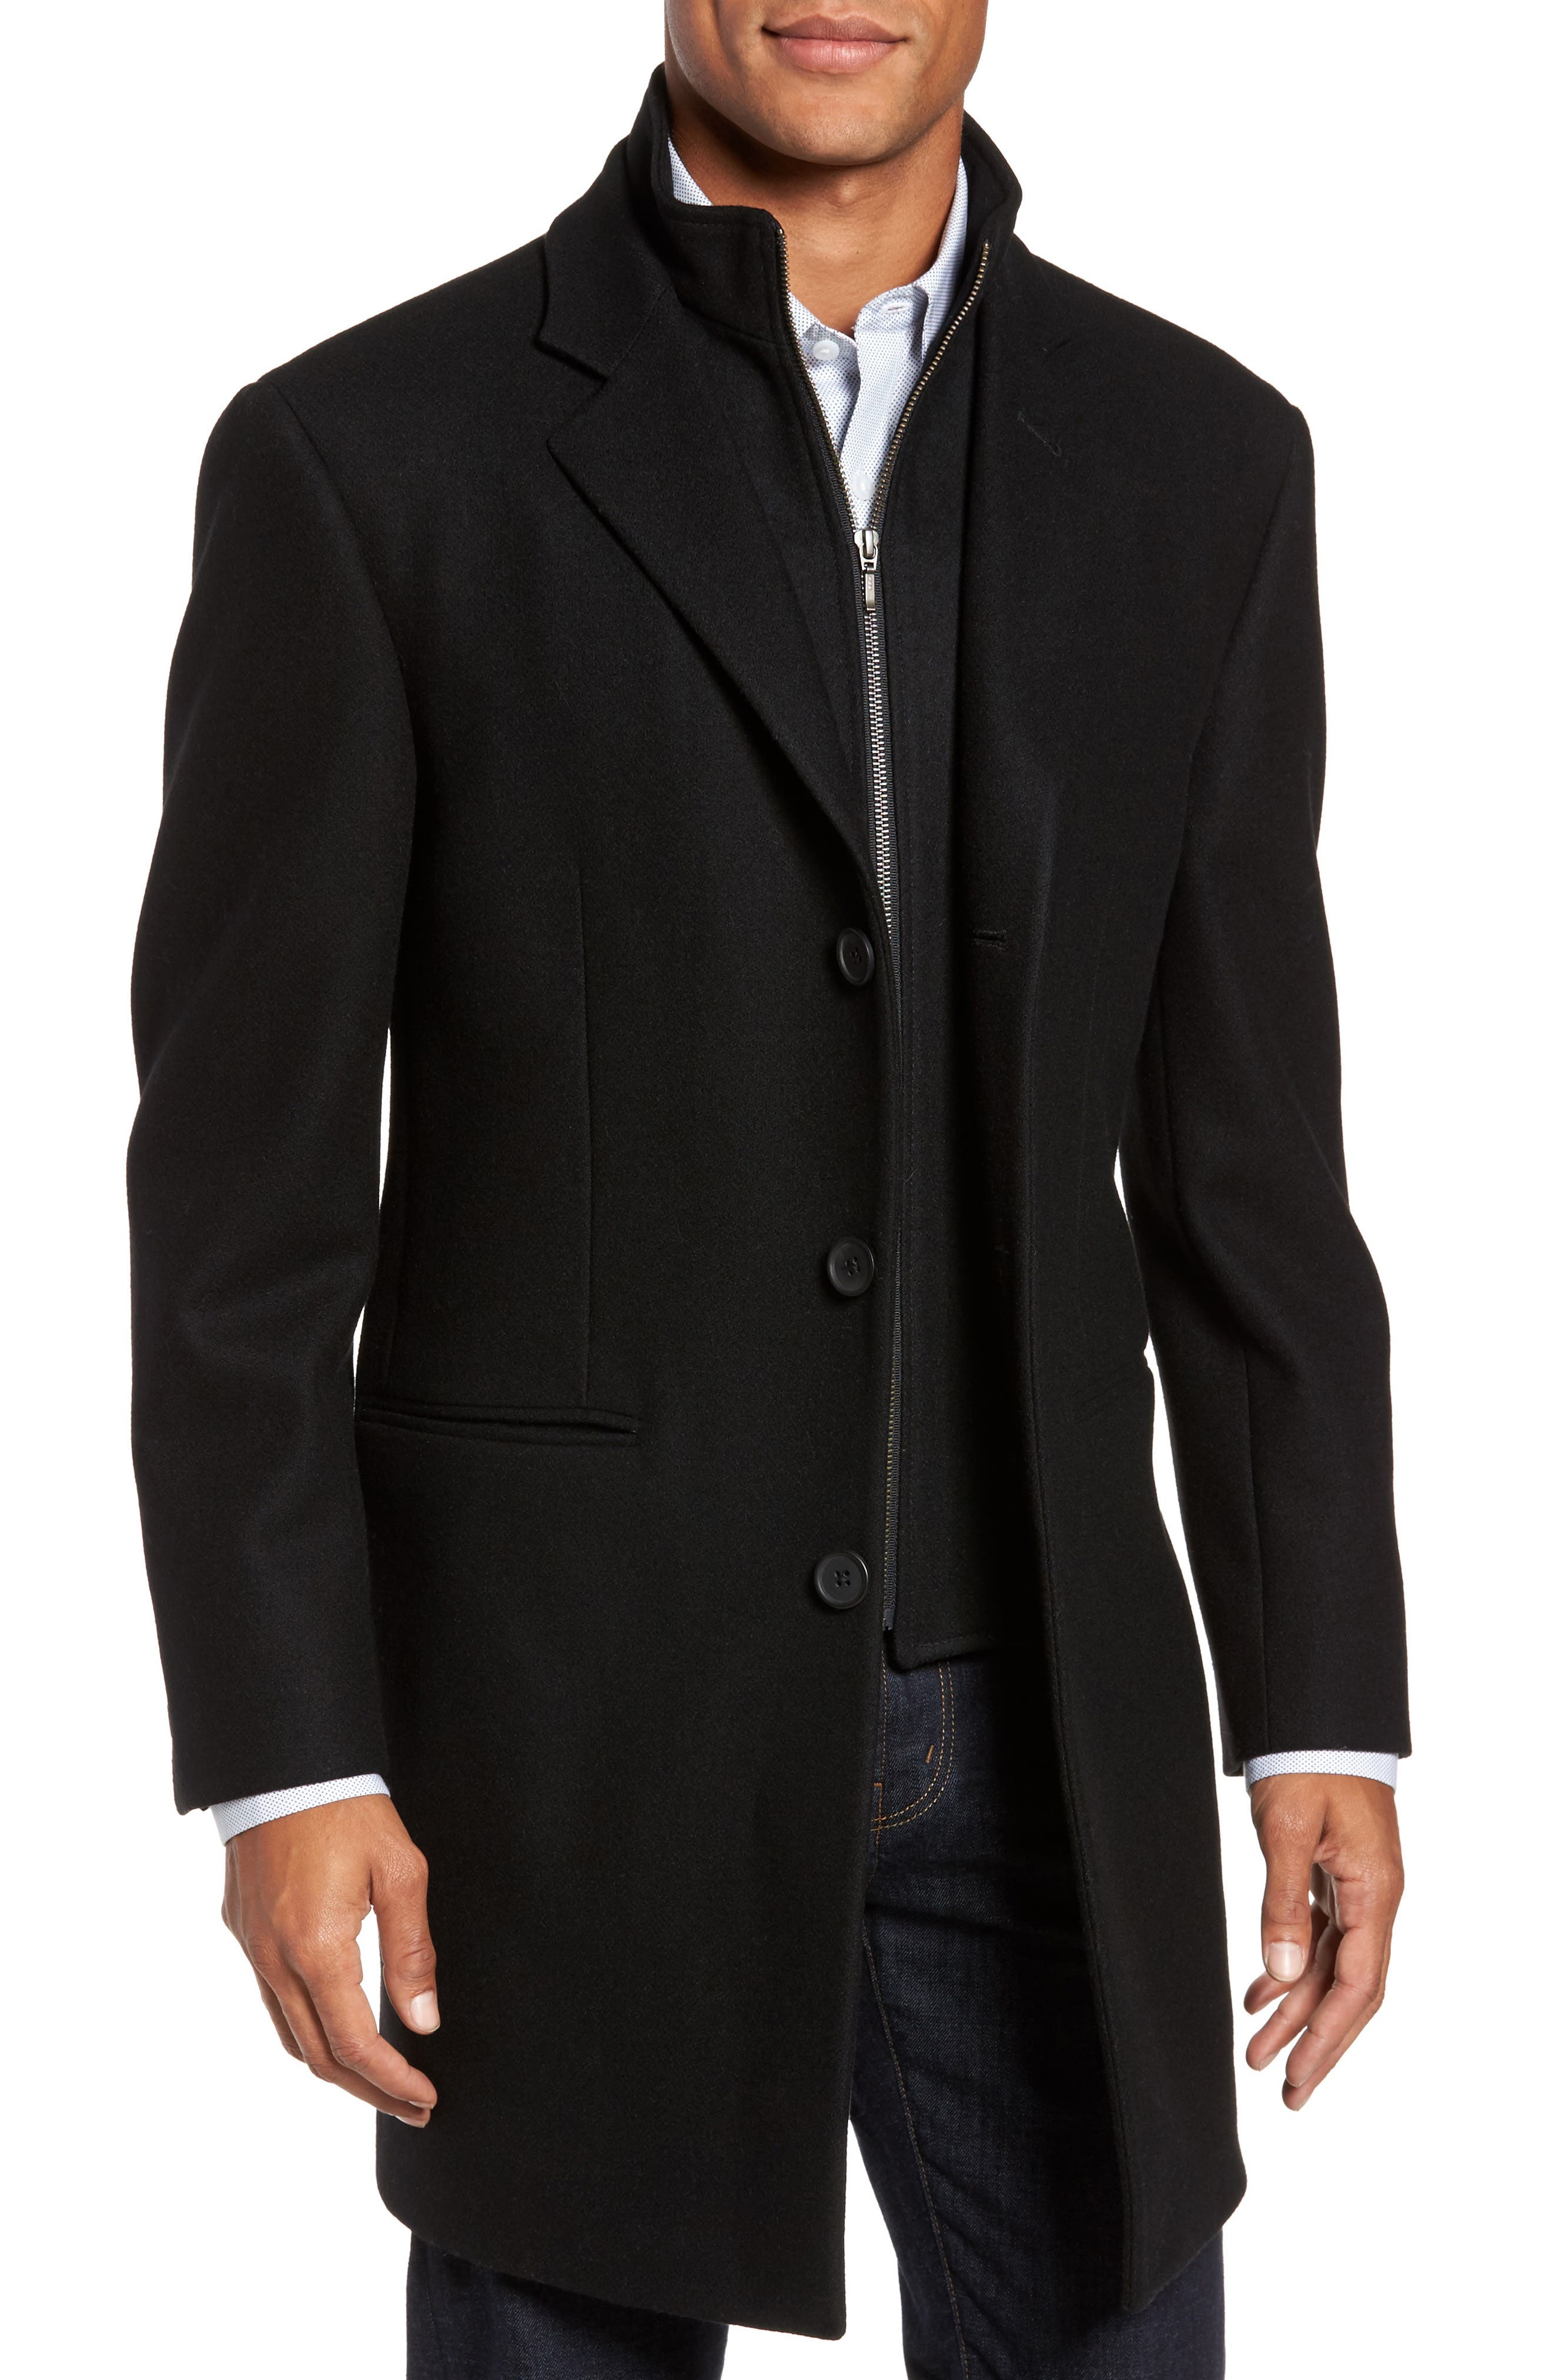 Carson Wool Blend Overcoat,                         Main,                         color, 001